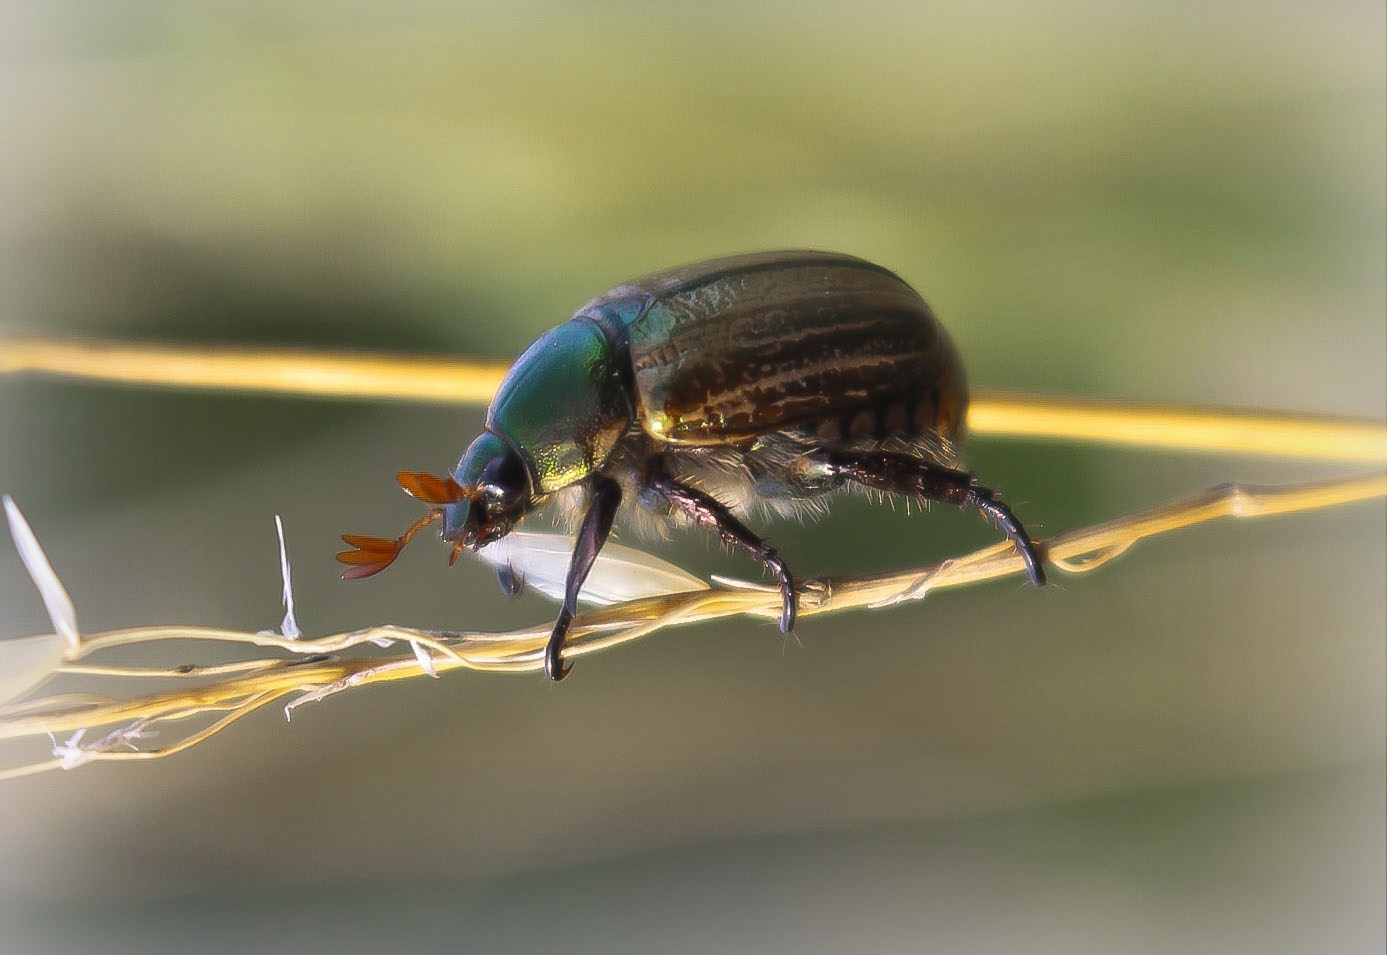 insects by Cesare Vatrano